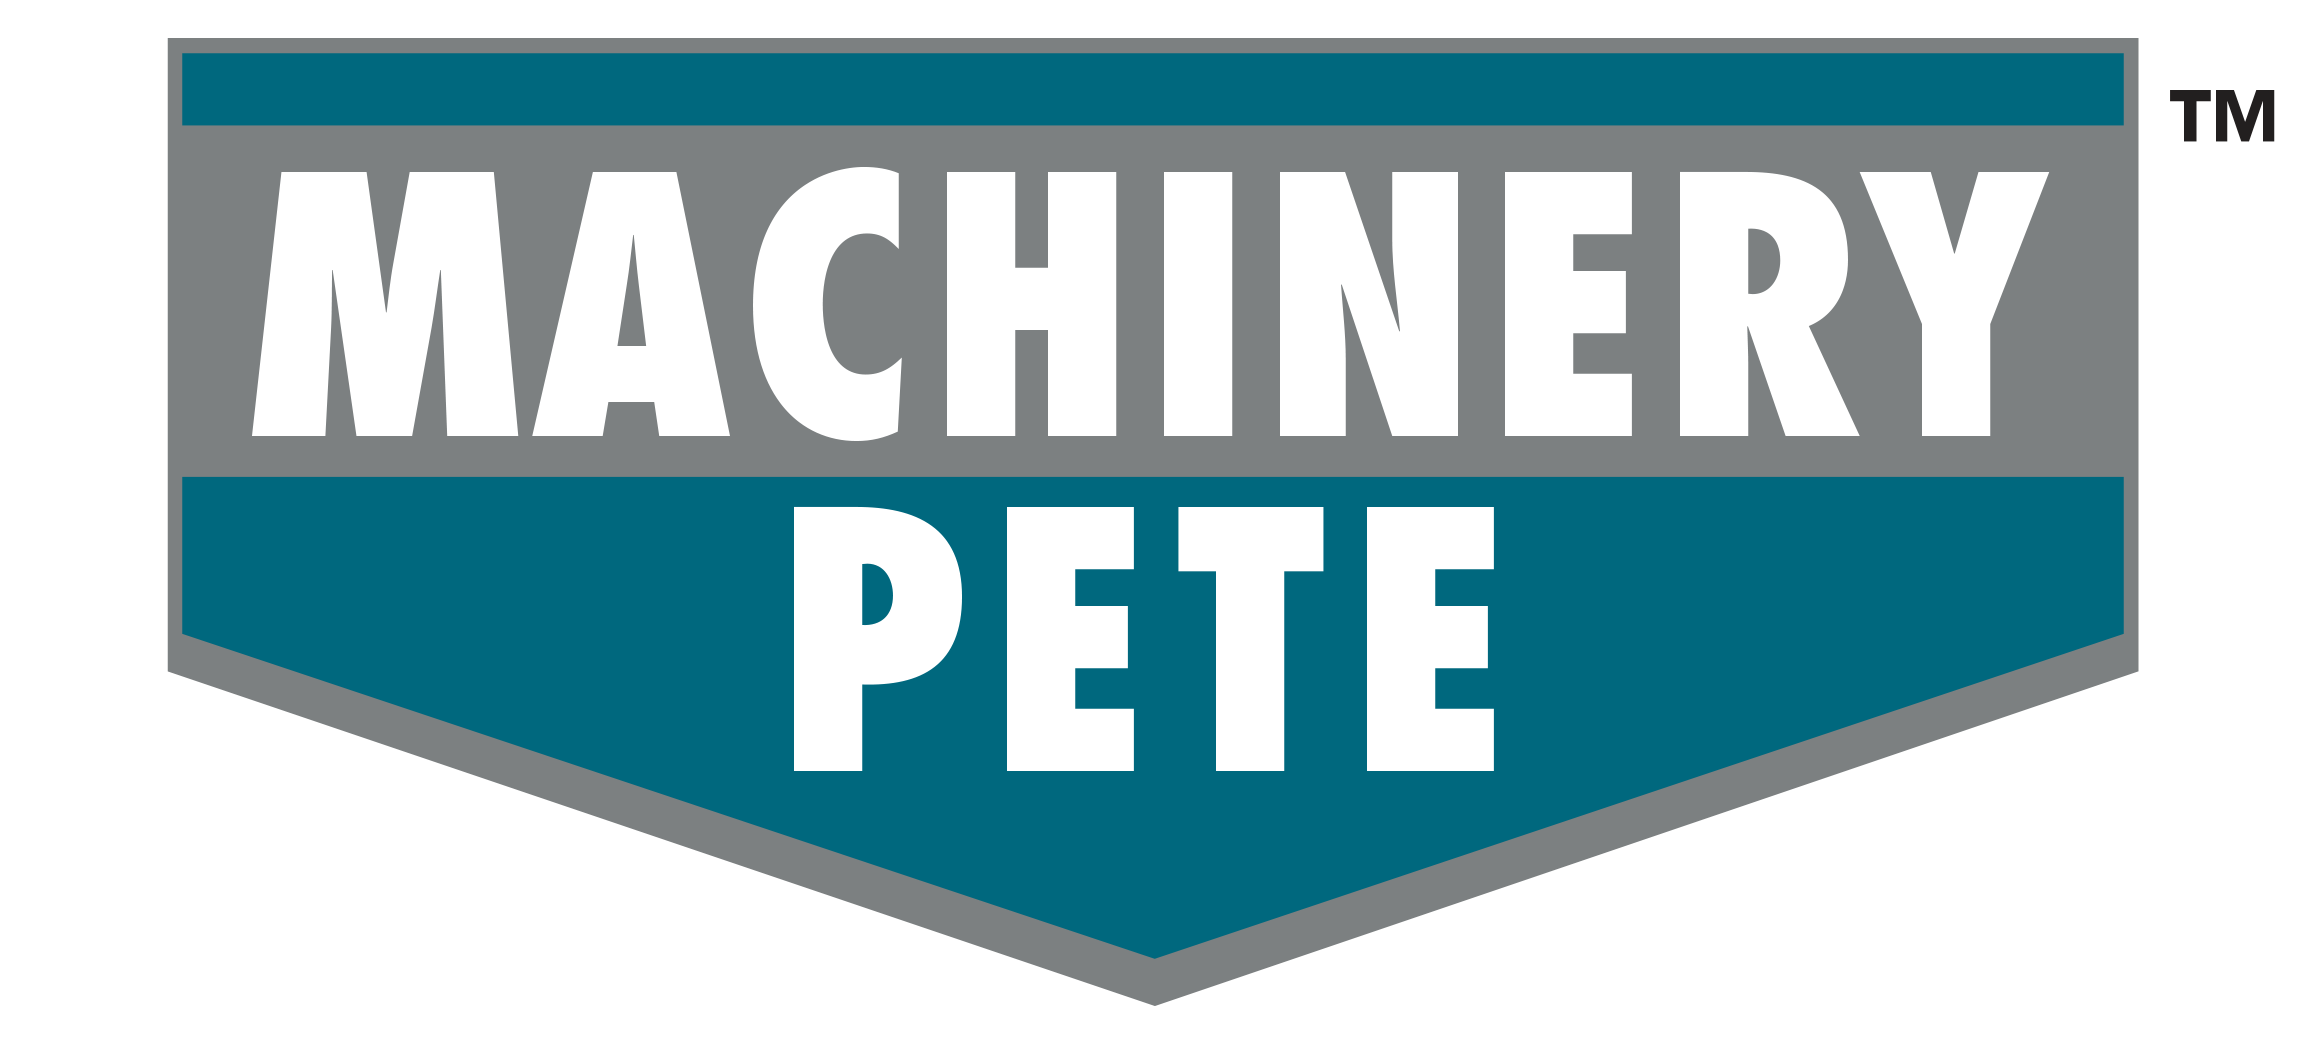 Image result for machinery pete logo